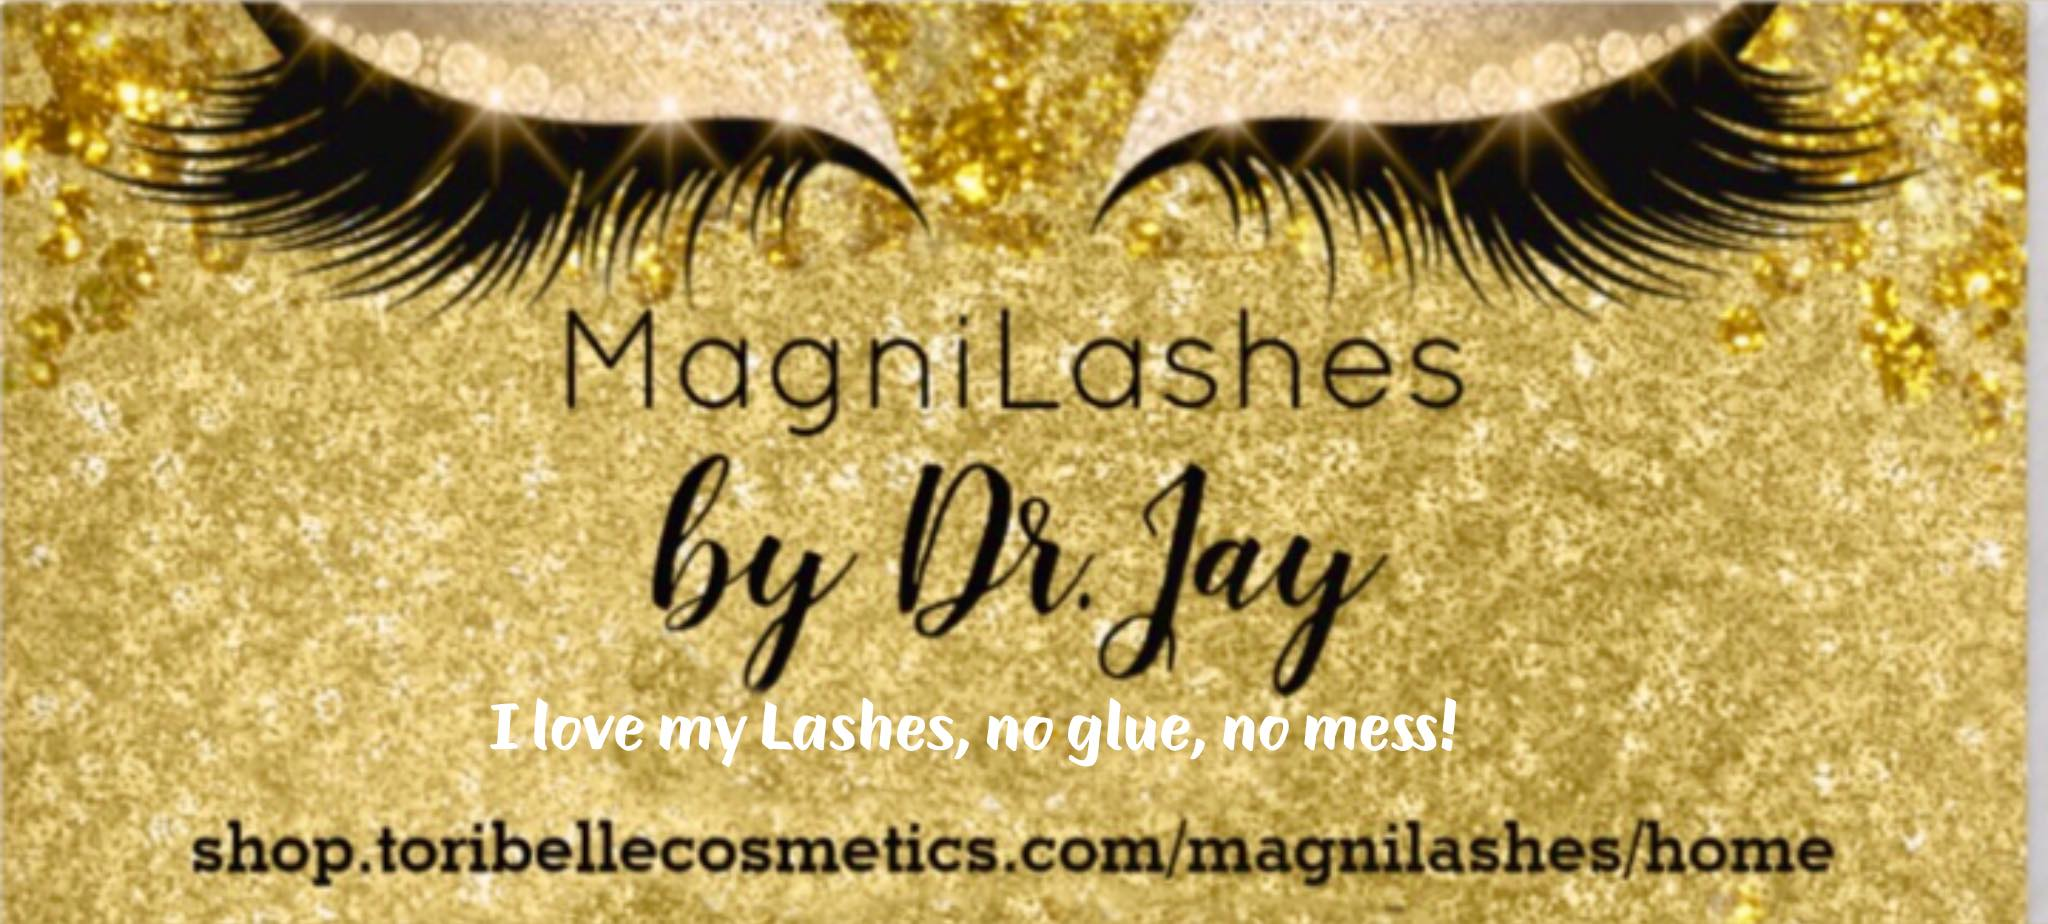 Magnetic Lashes & Cosmetics